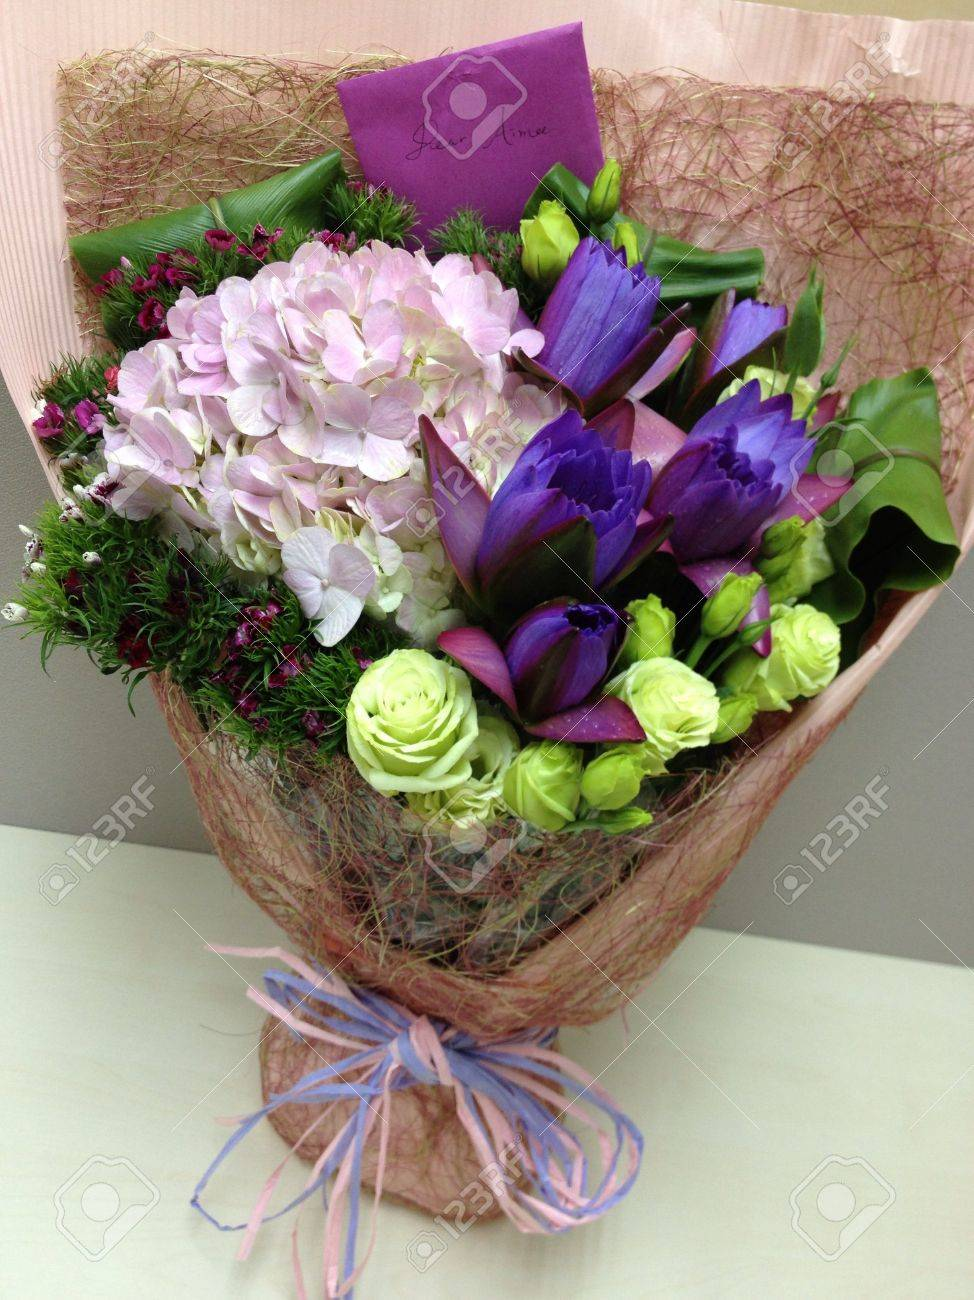 Special pink and purple flower bouquet with lotus embroidery special pink and purple flower bouquet with lotus embroidery flowers stock photo 26632751 izmirmasajfo